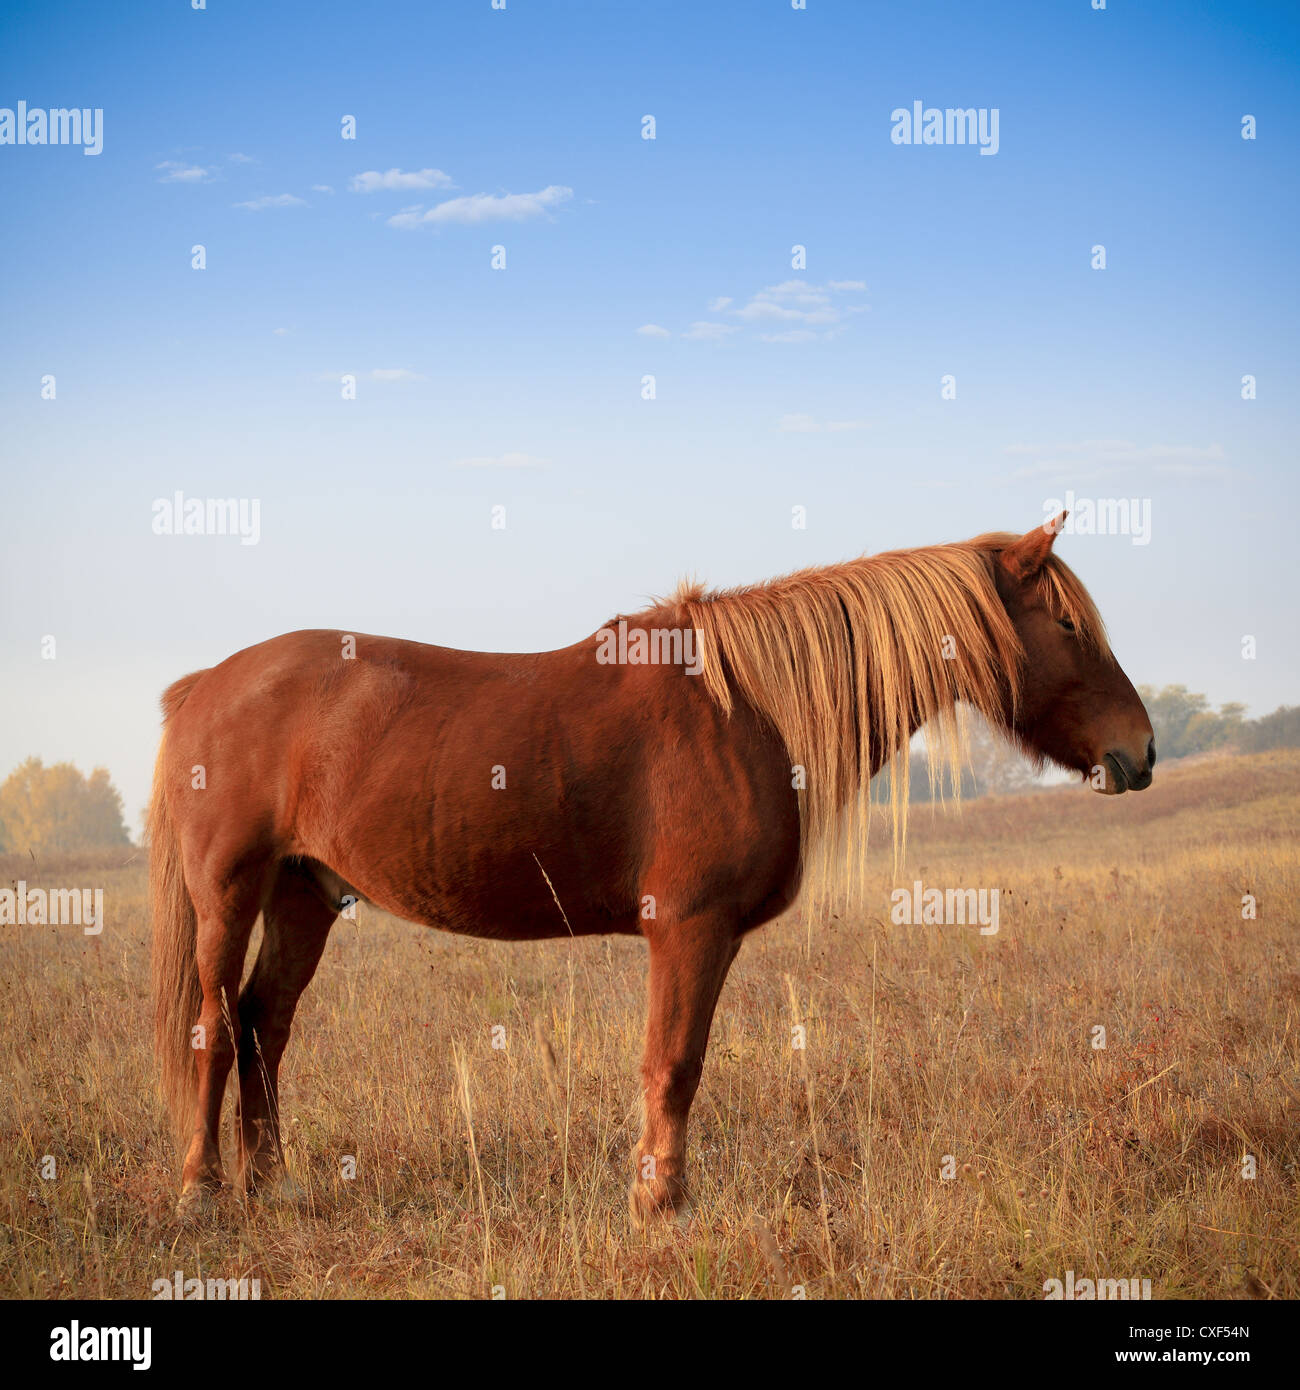 Brown Horse High Resolution Stock Photography And Images Alamy